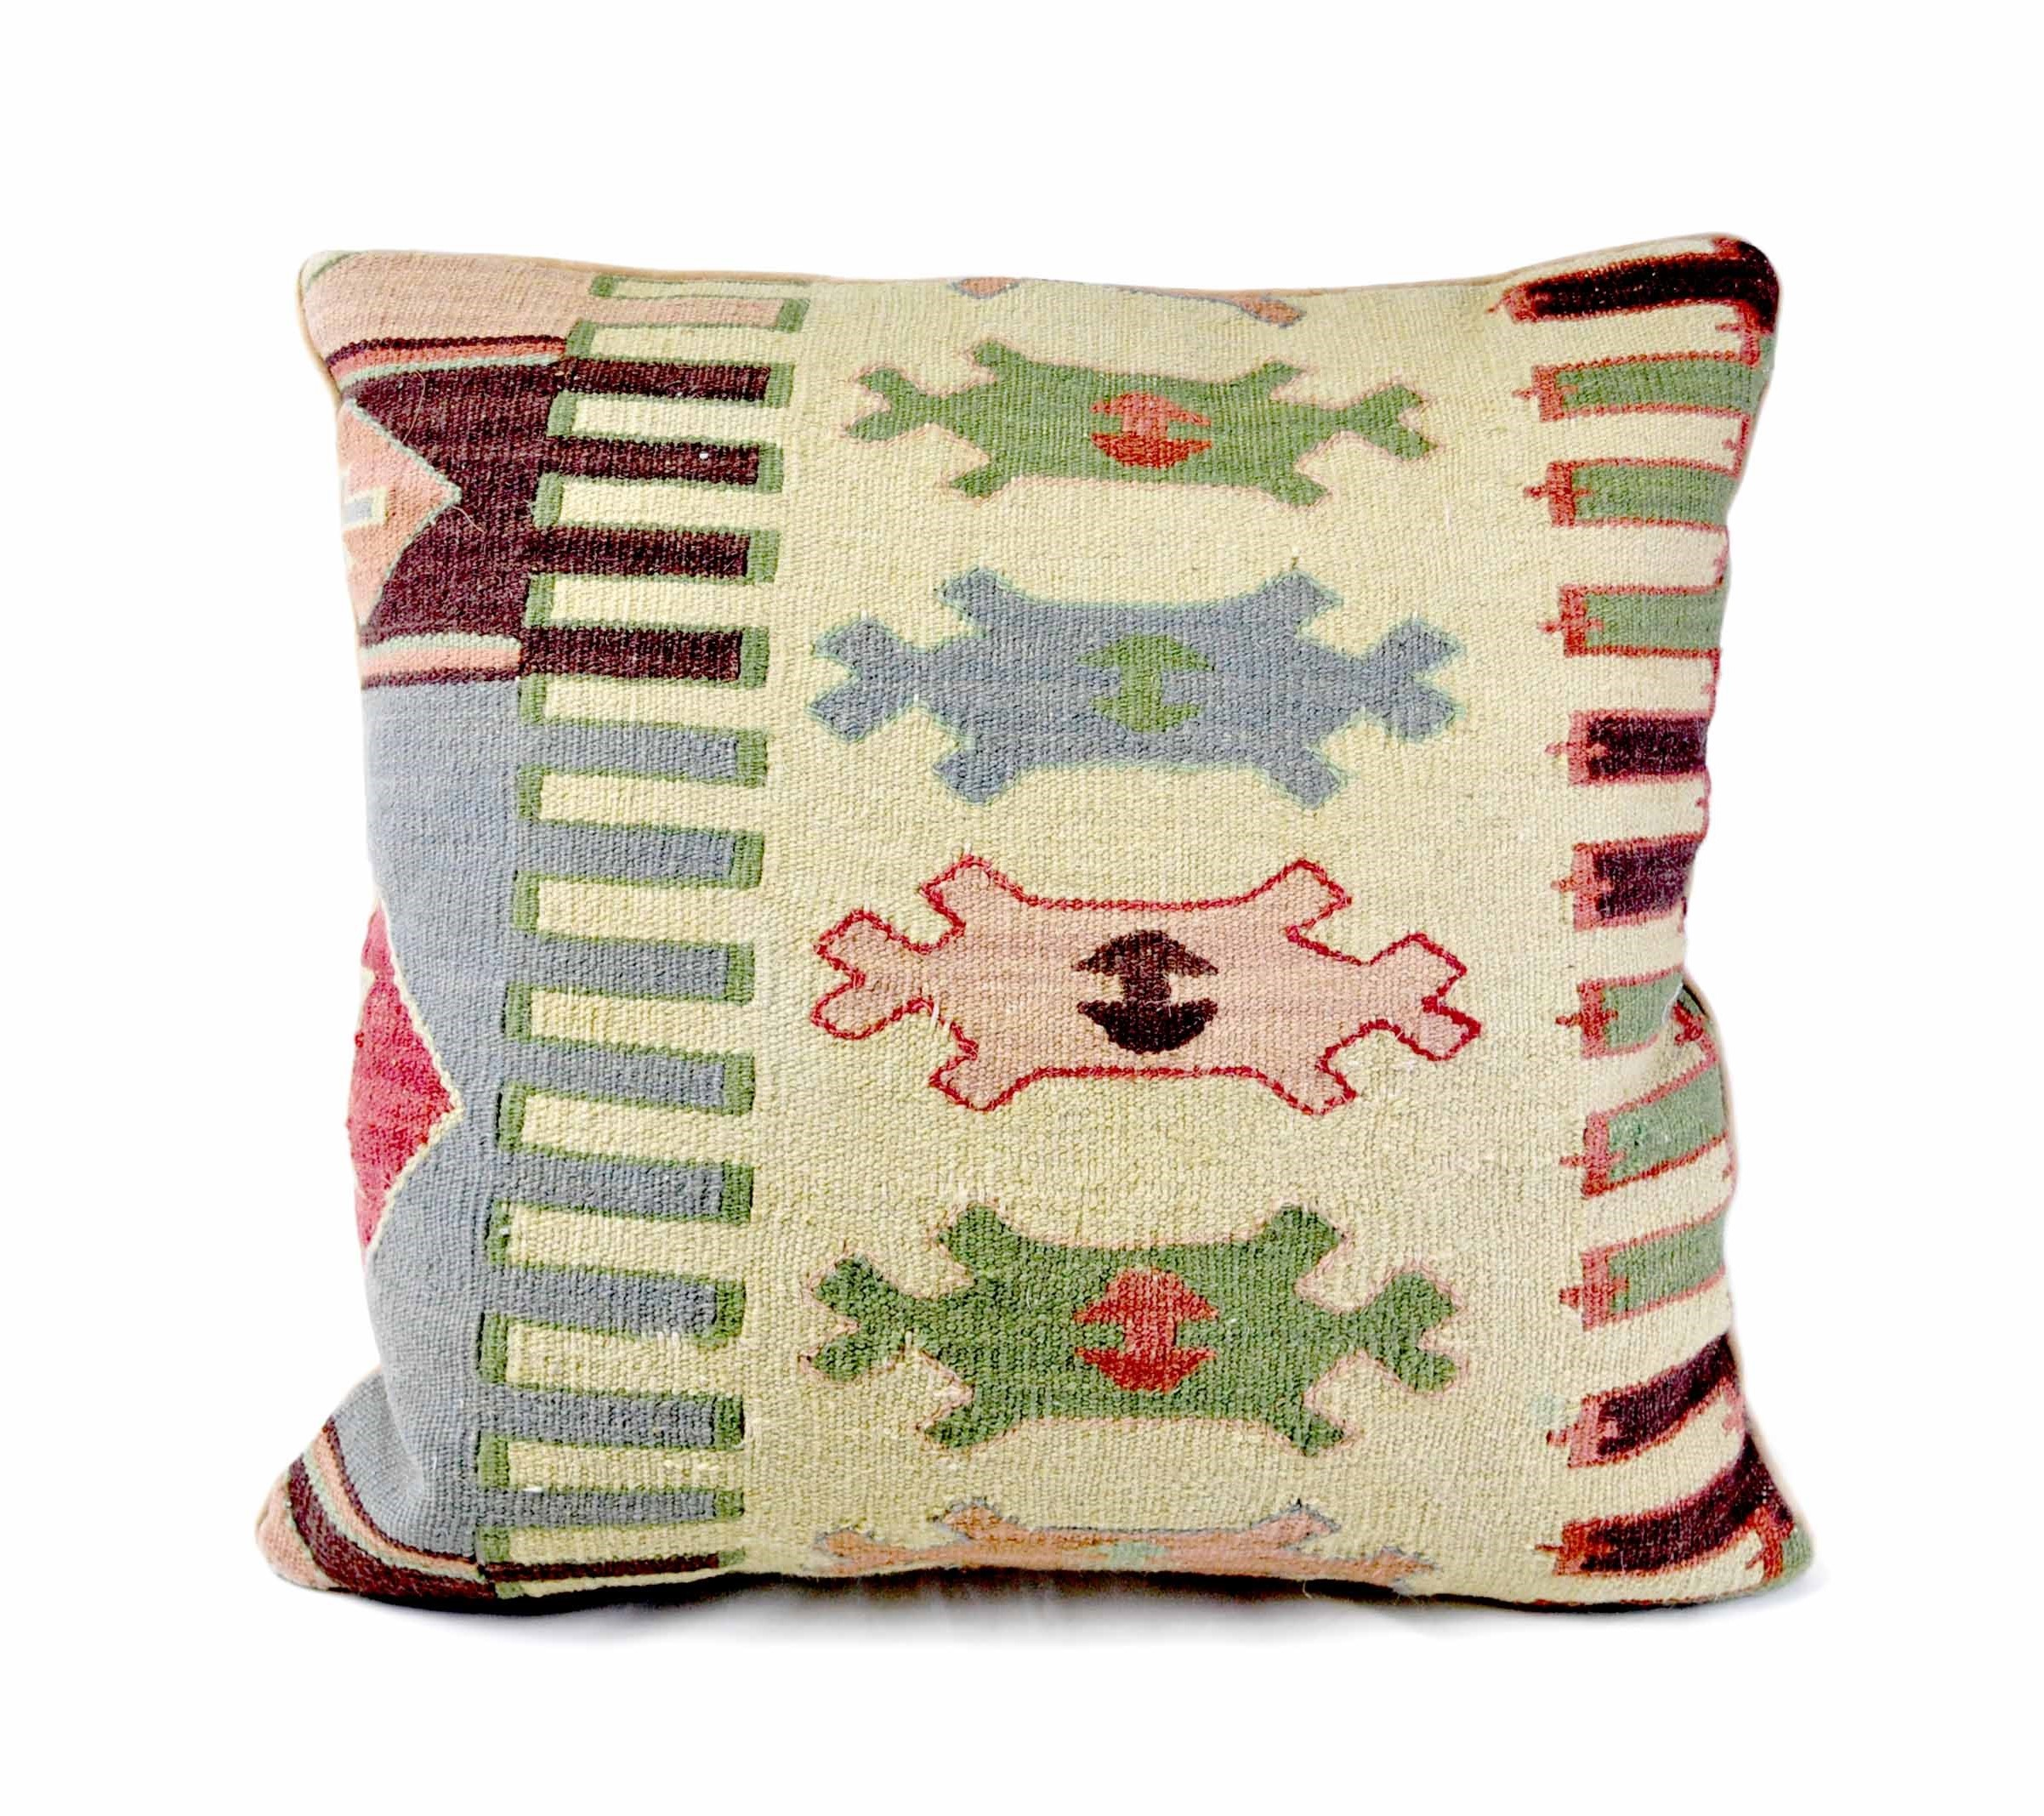 22×22 Hand-woven Wool Kilim Pillow Cover 12981034